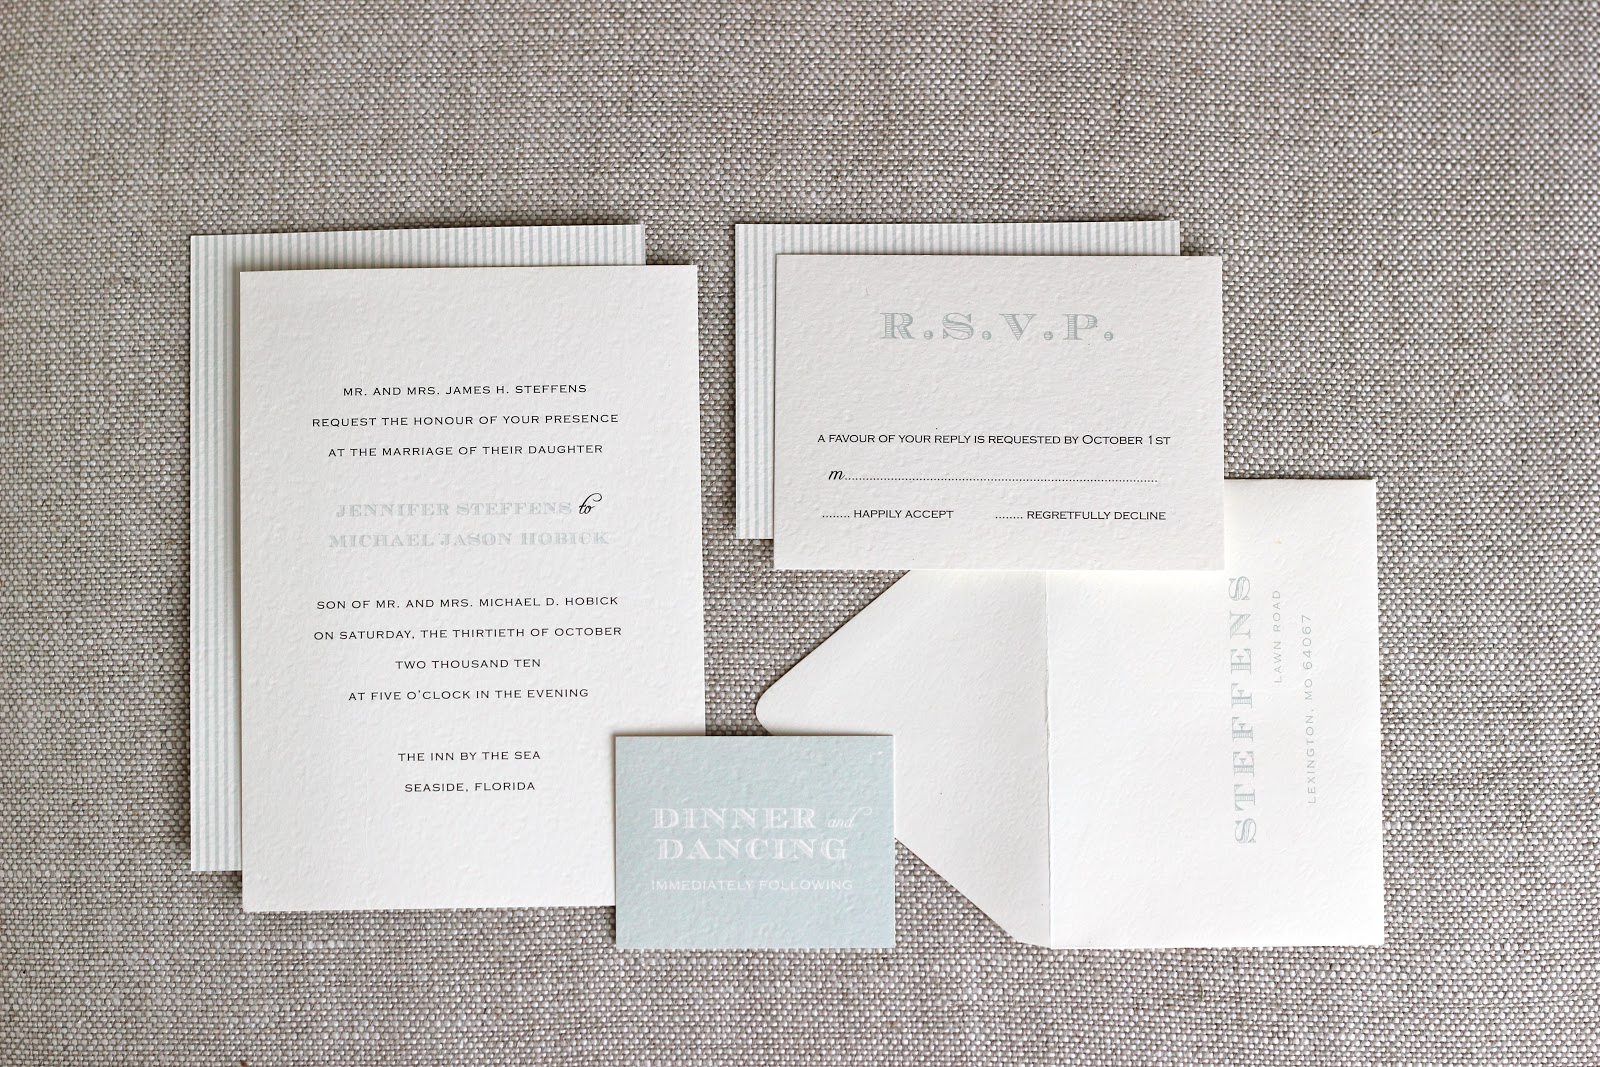 Jenny Steffens Hobick: Our Wedding Invitations | Seaside bound...